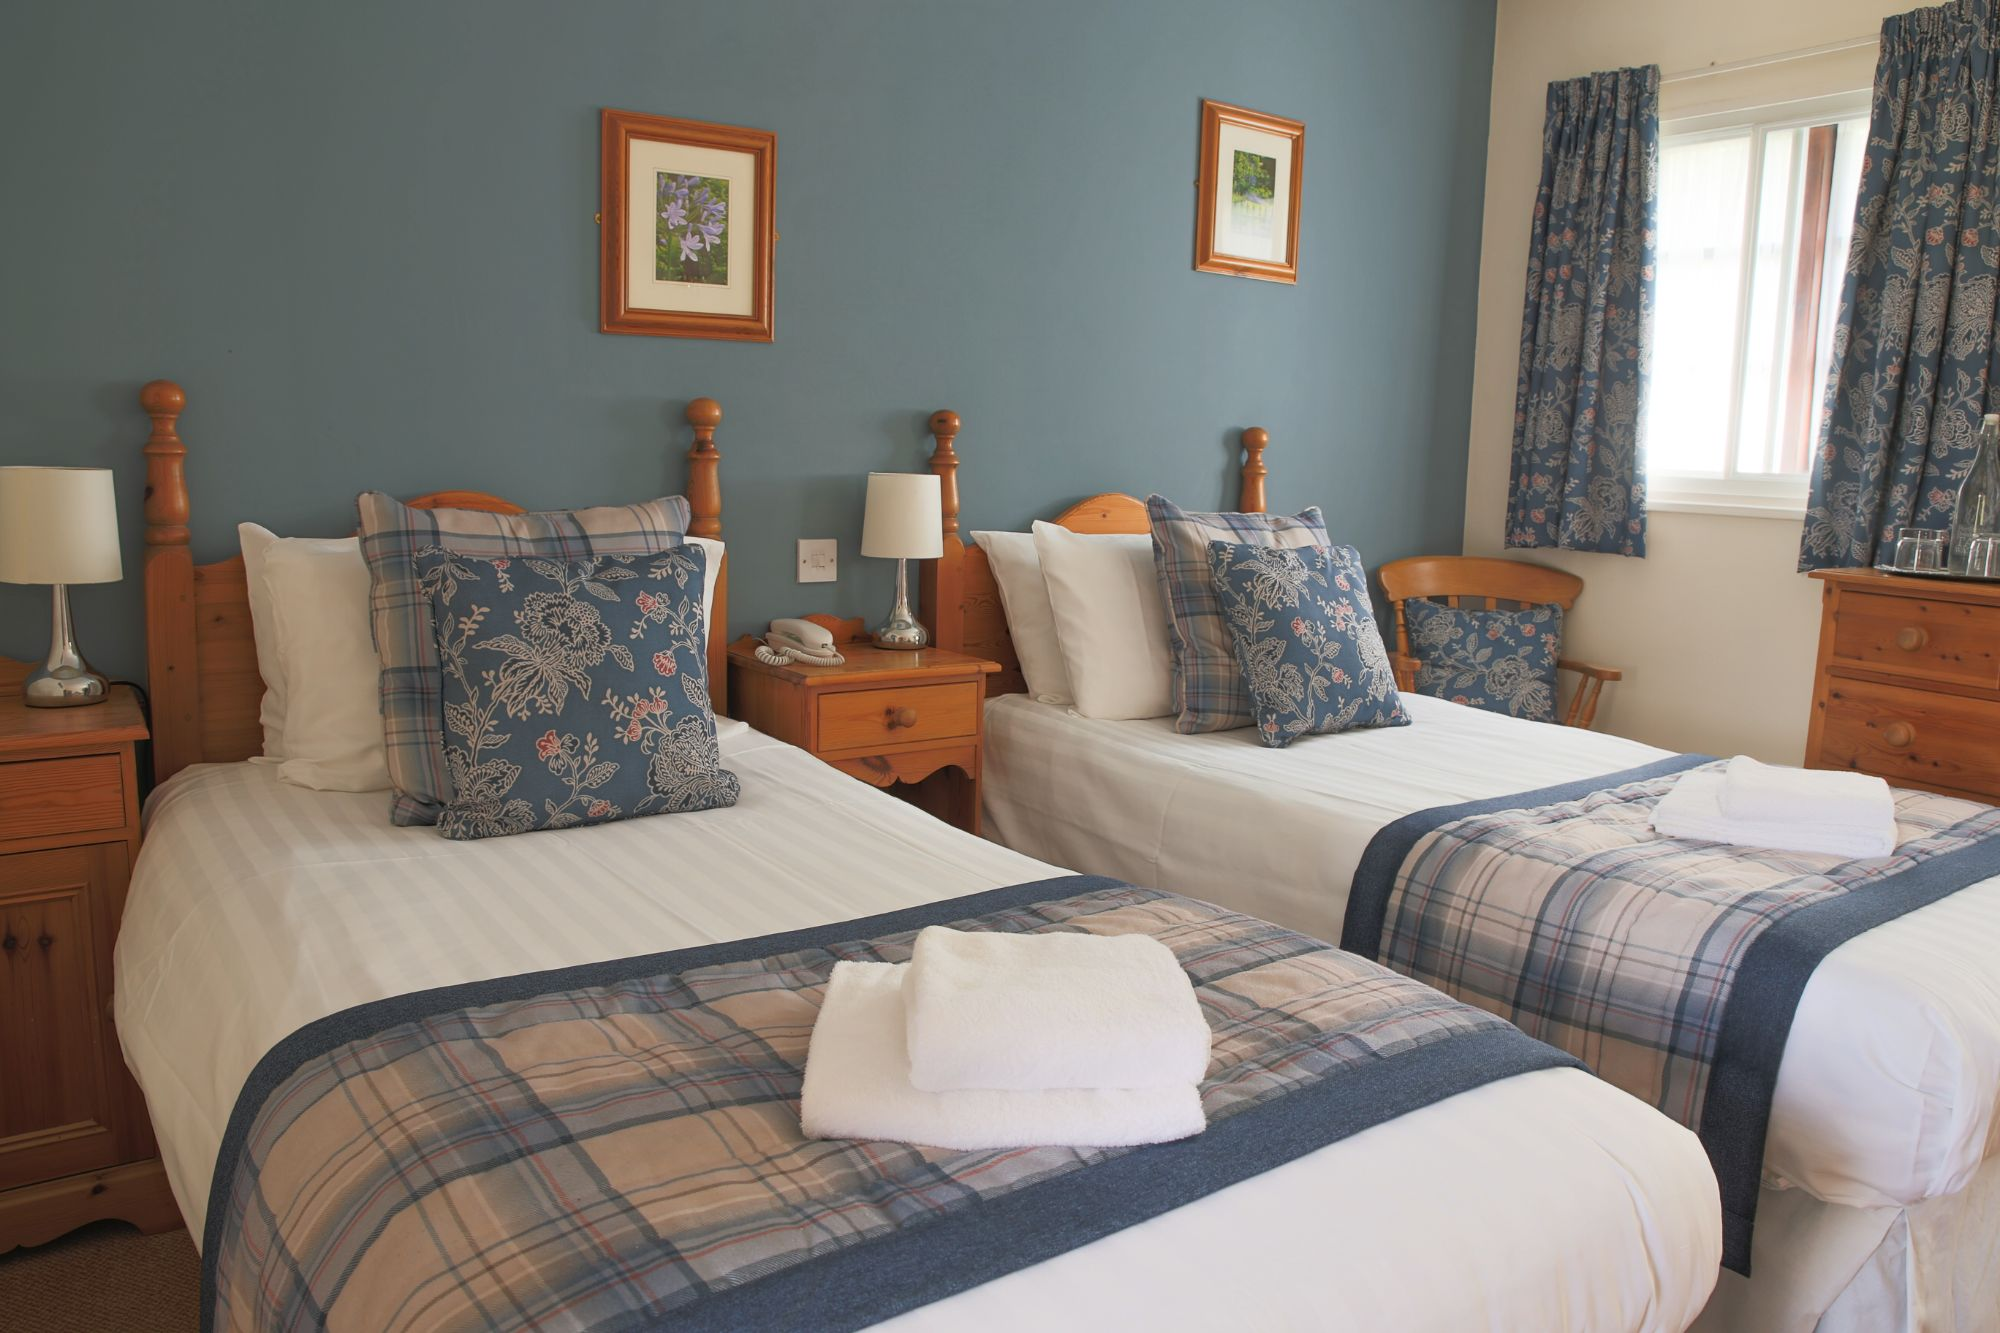 example accommodation at the The Greyhound Inn